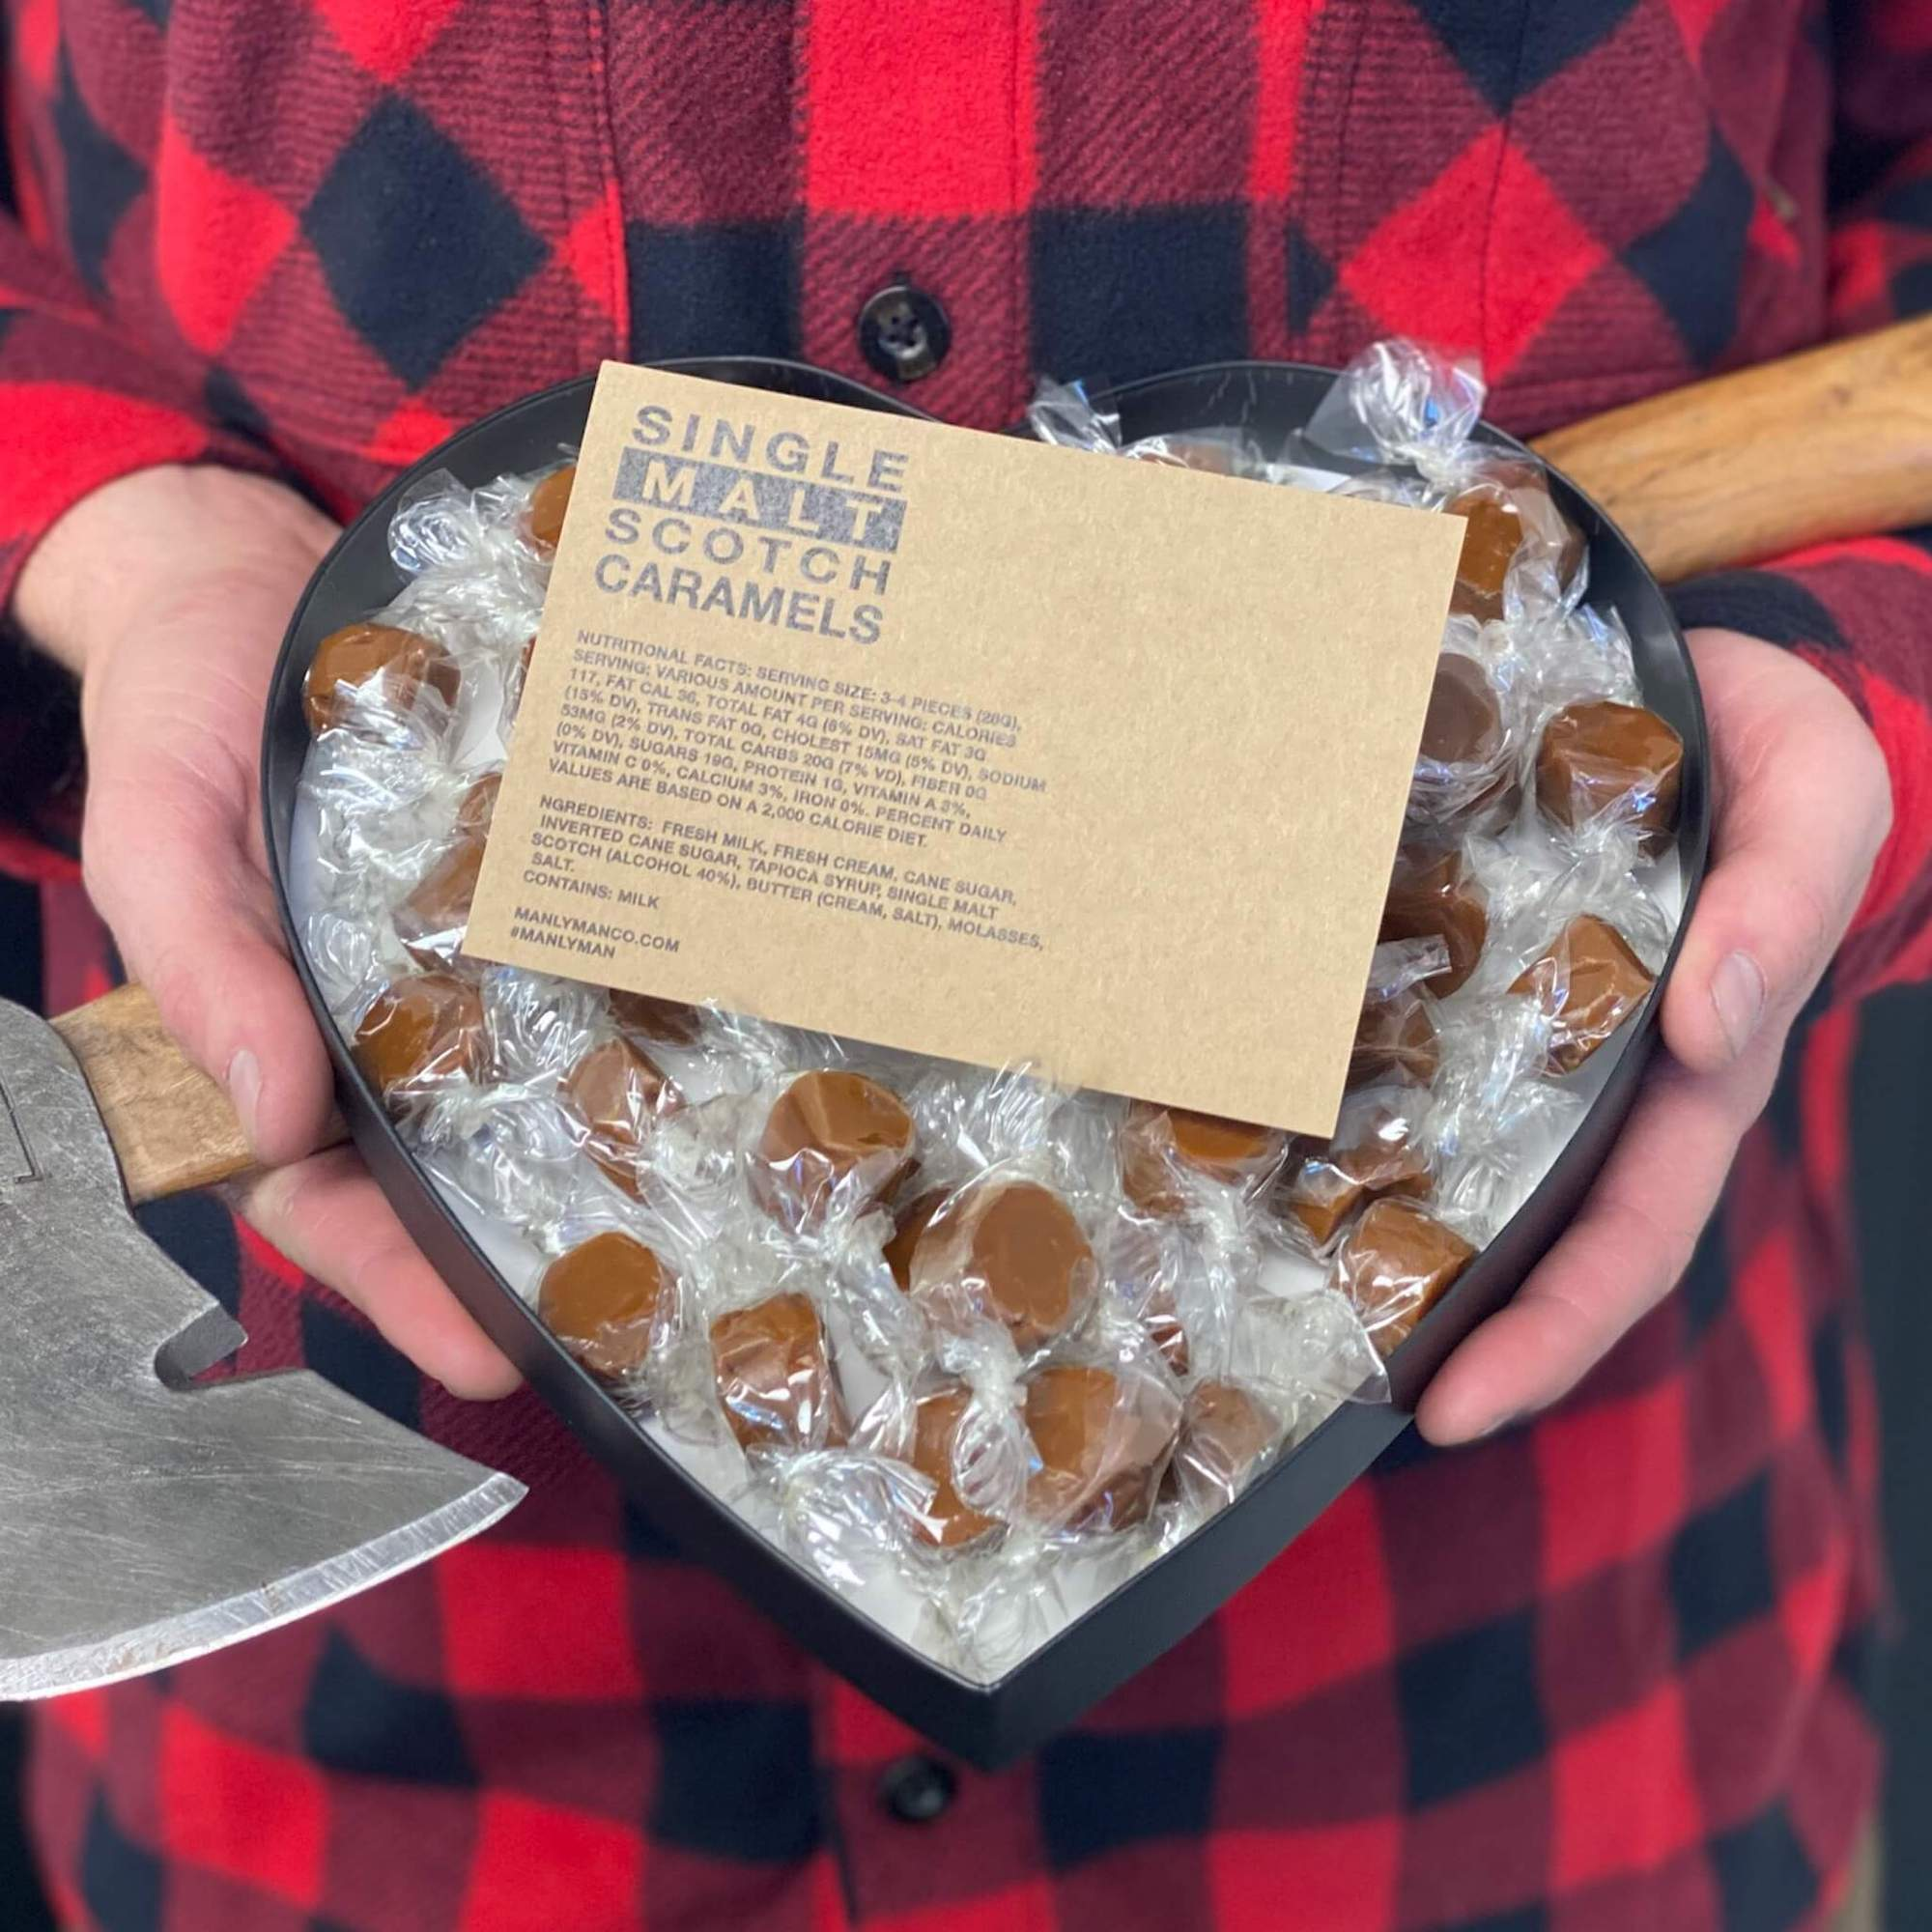 New heart-shaped gift box, filled with single malt scotch caramels, being held by man in flannel shirt